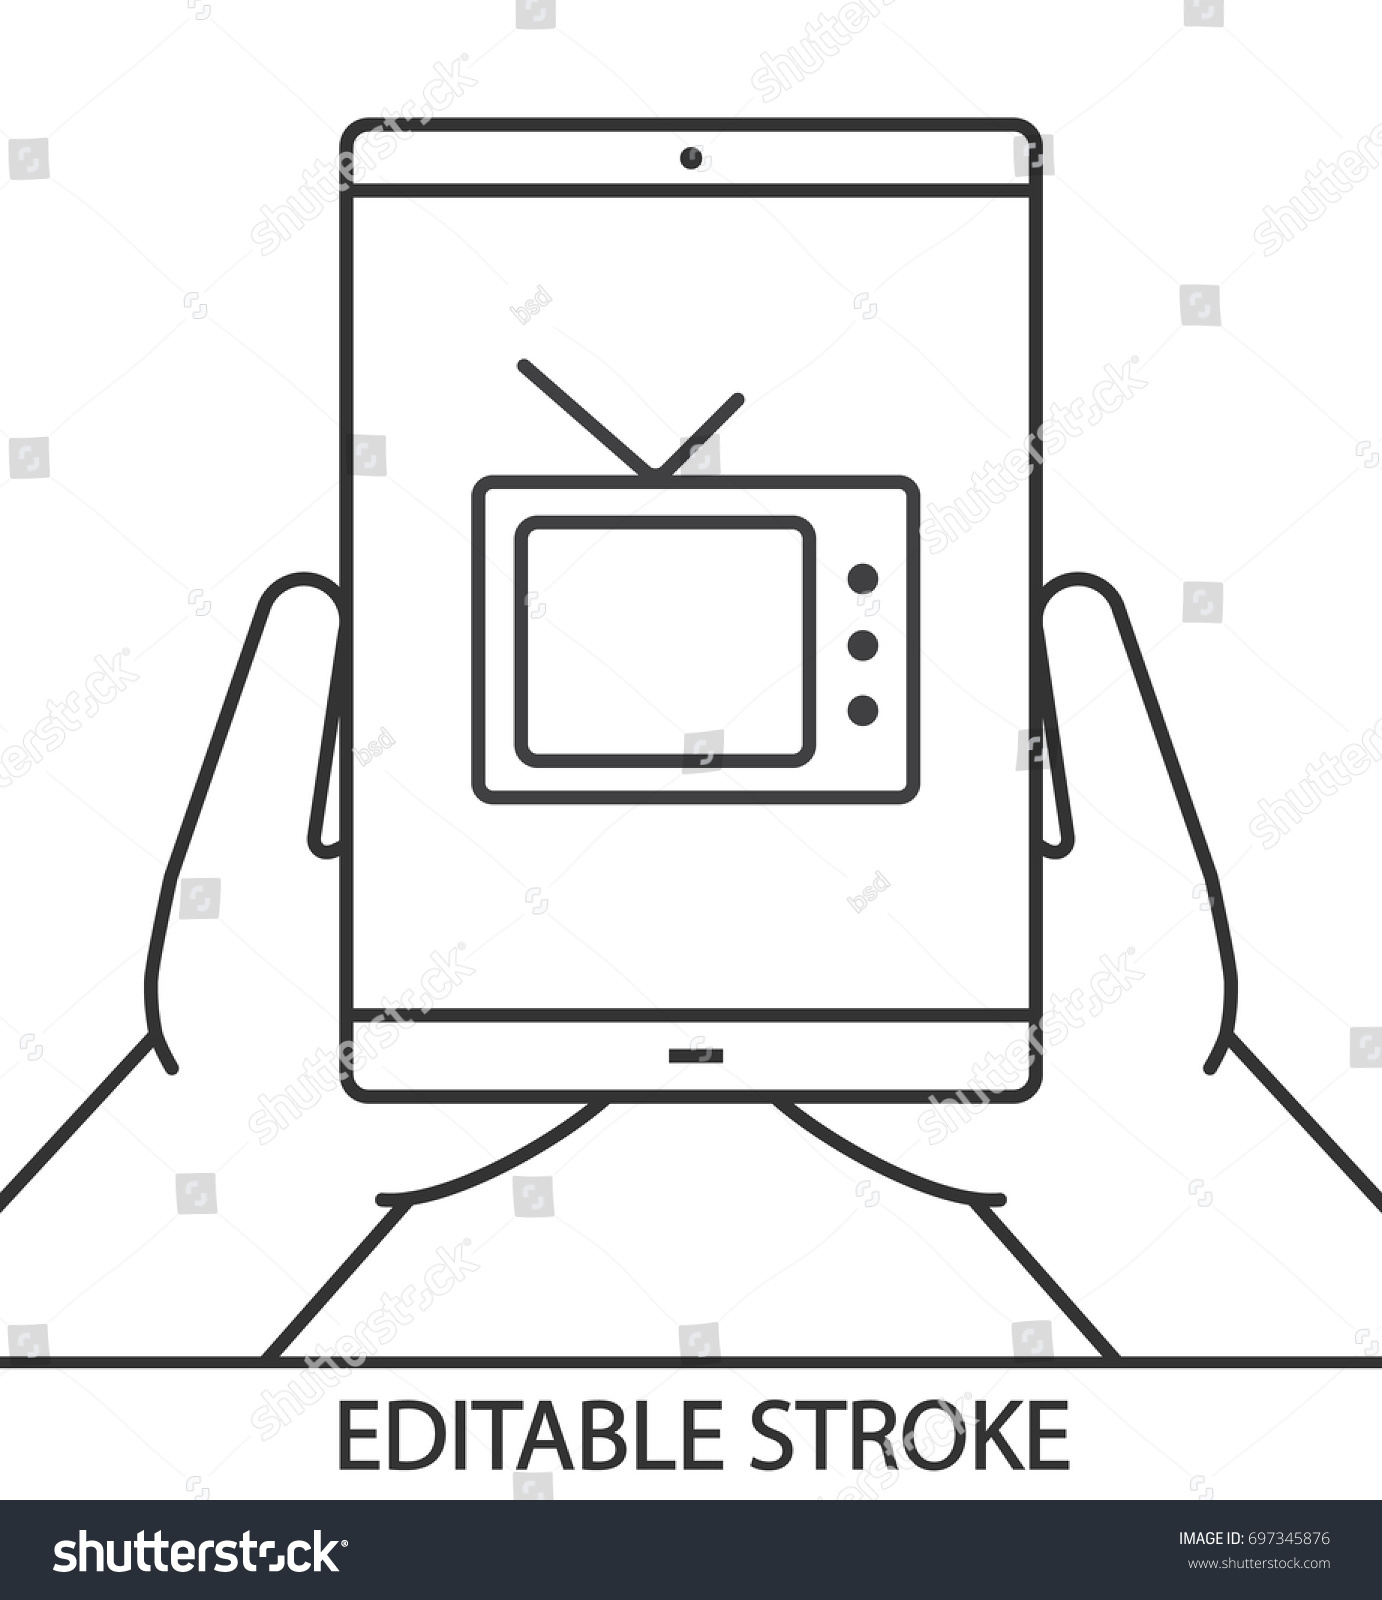 Hands Holding Tablet Computer Linear Icon Stock Vector Royalty Free